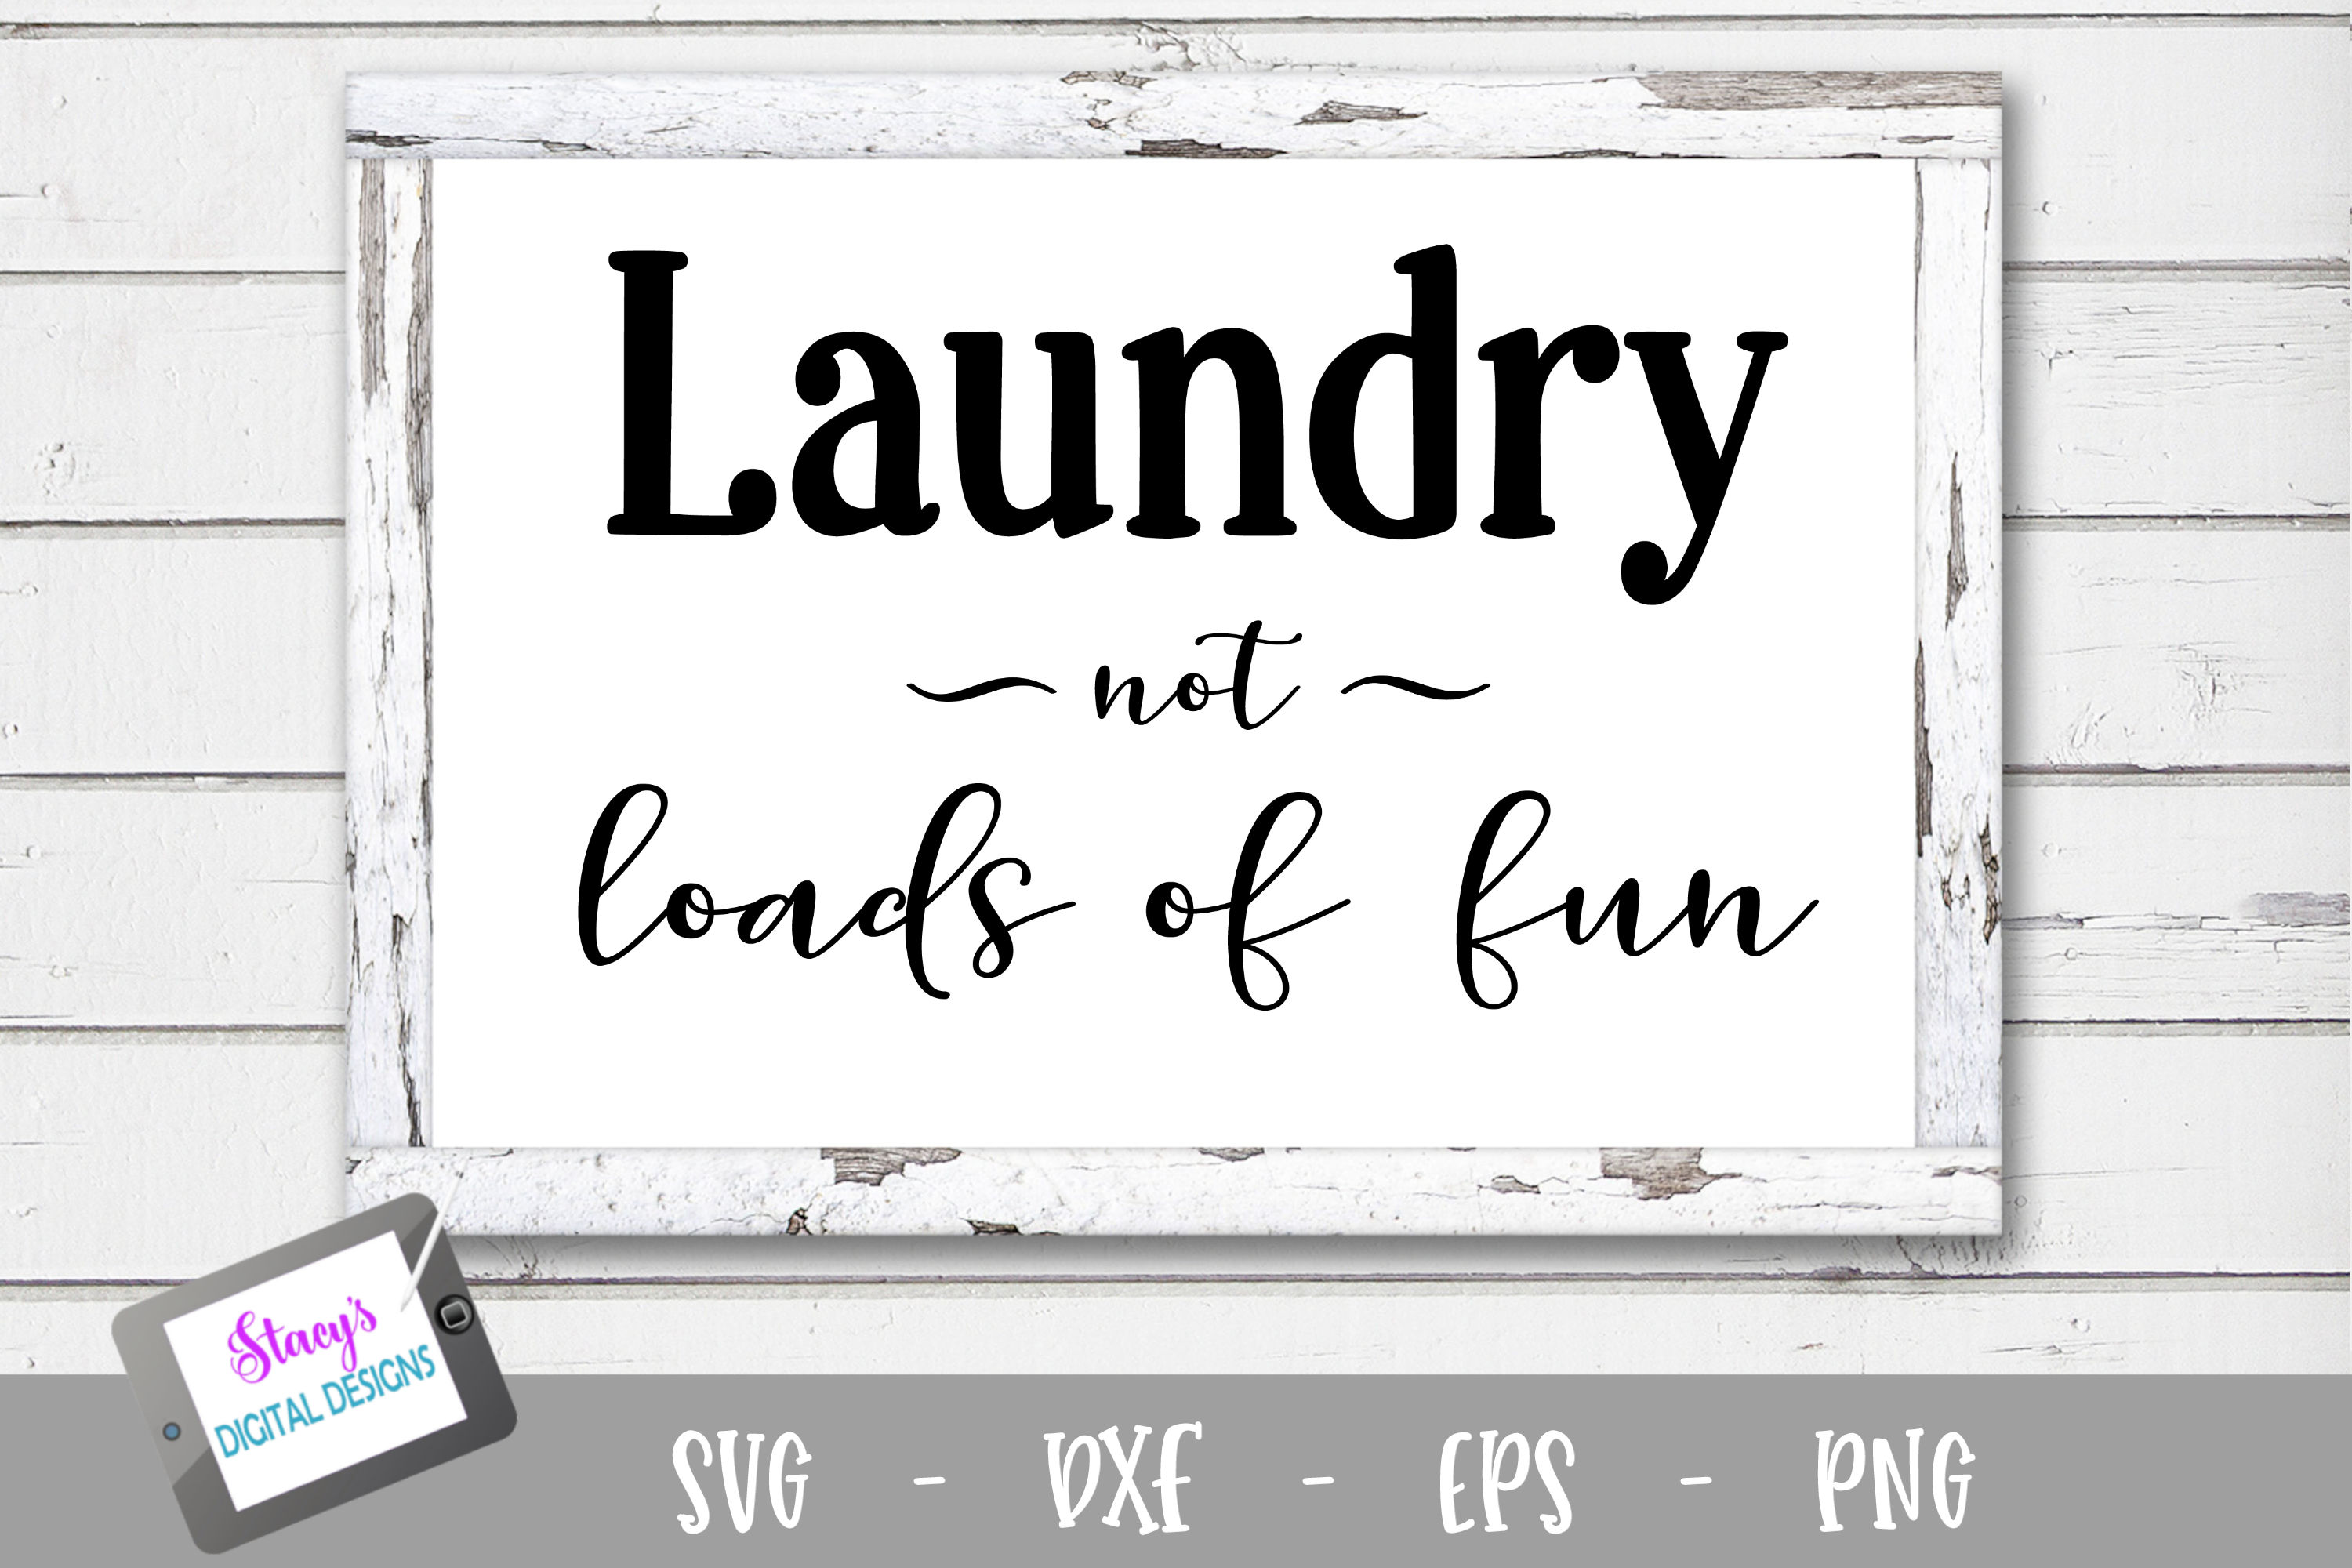 Laundry SVG Bundle - 6 Laundry room sign SVG files example image 3